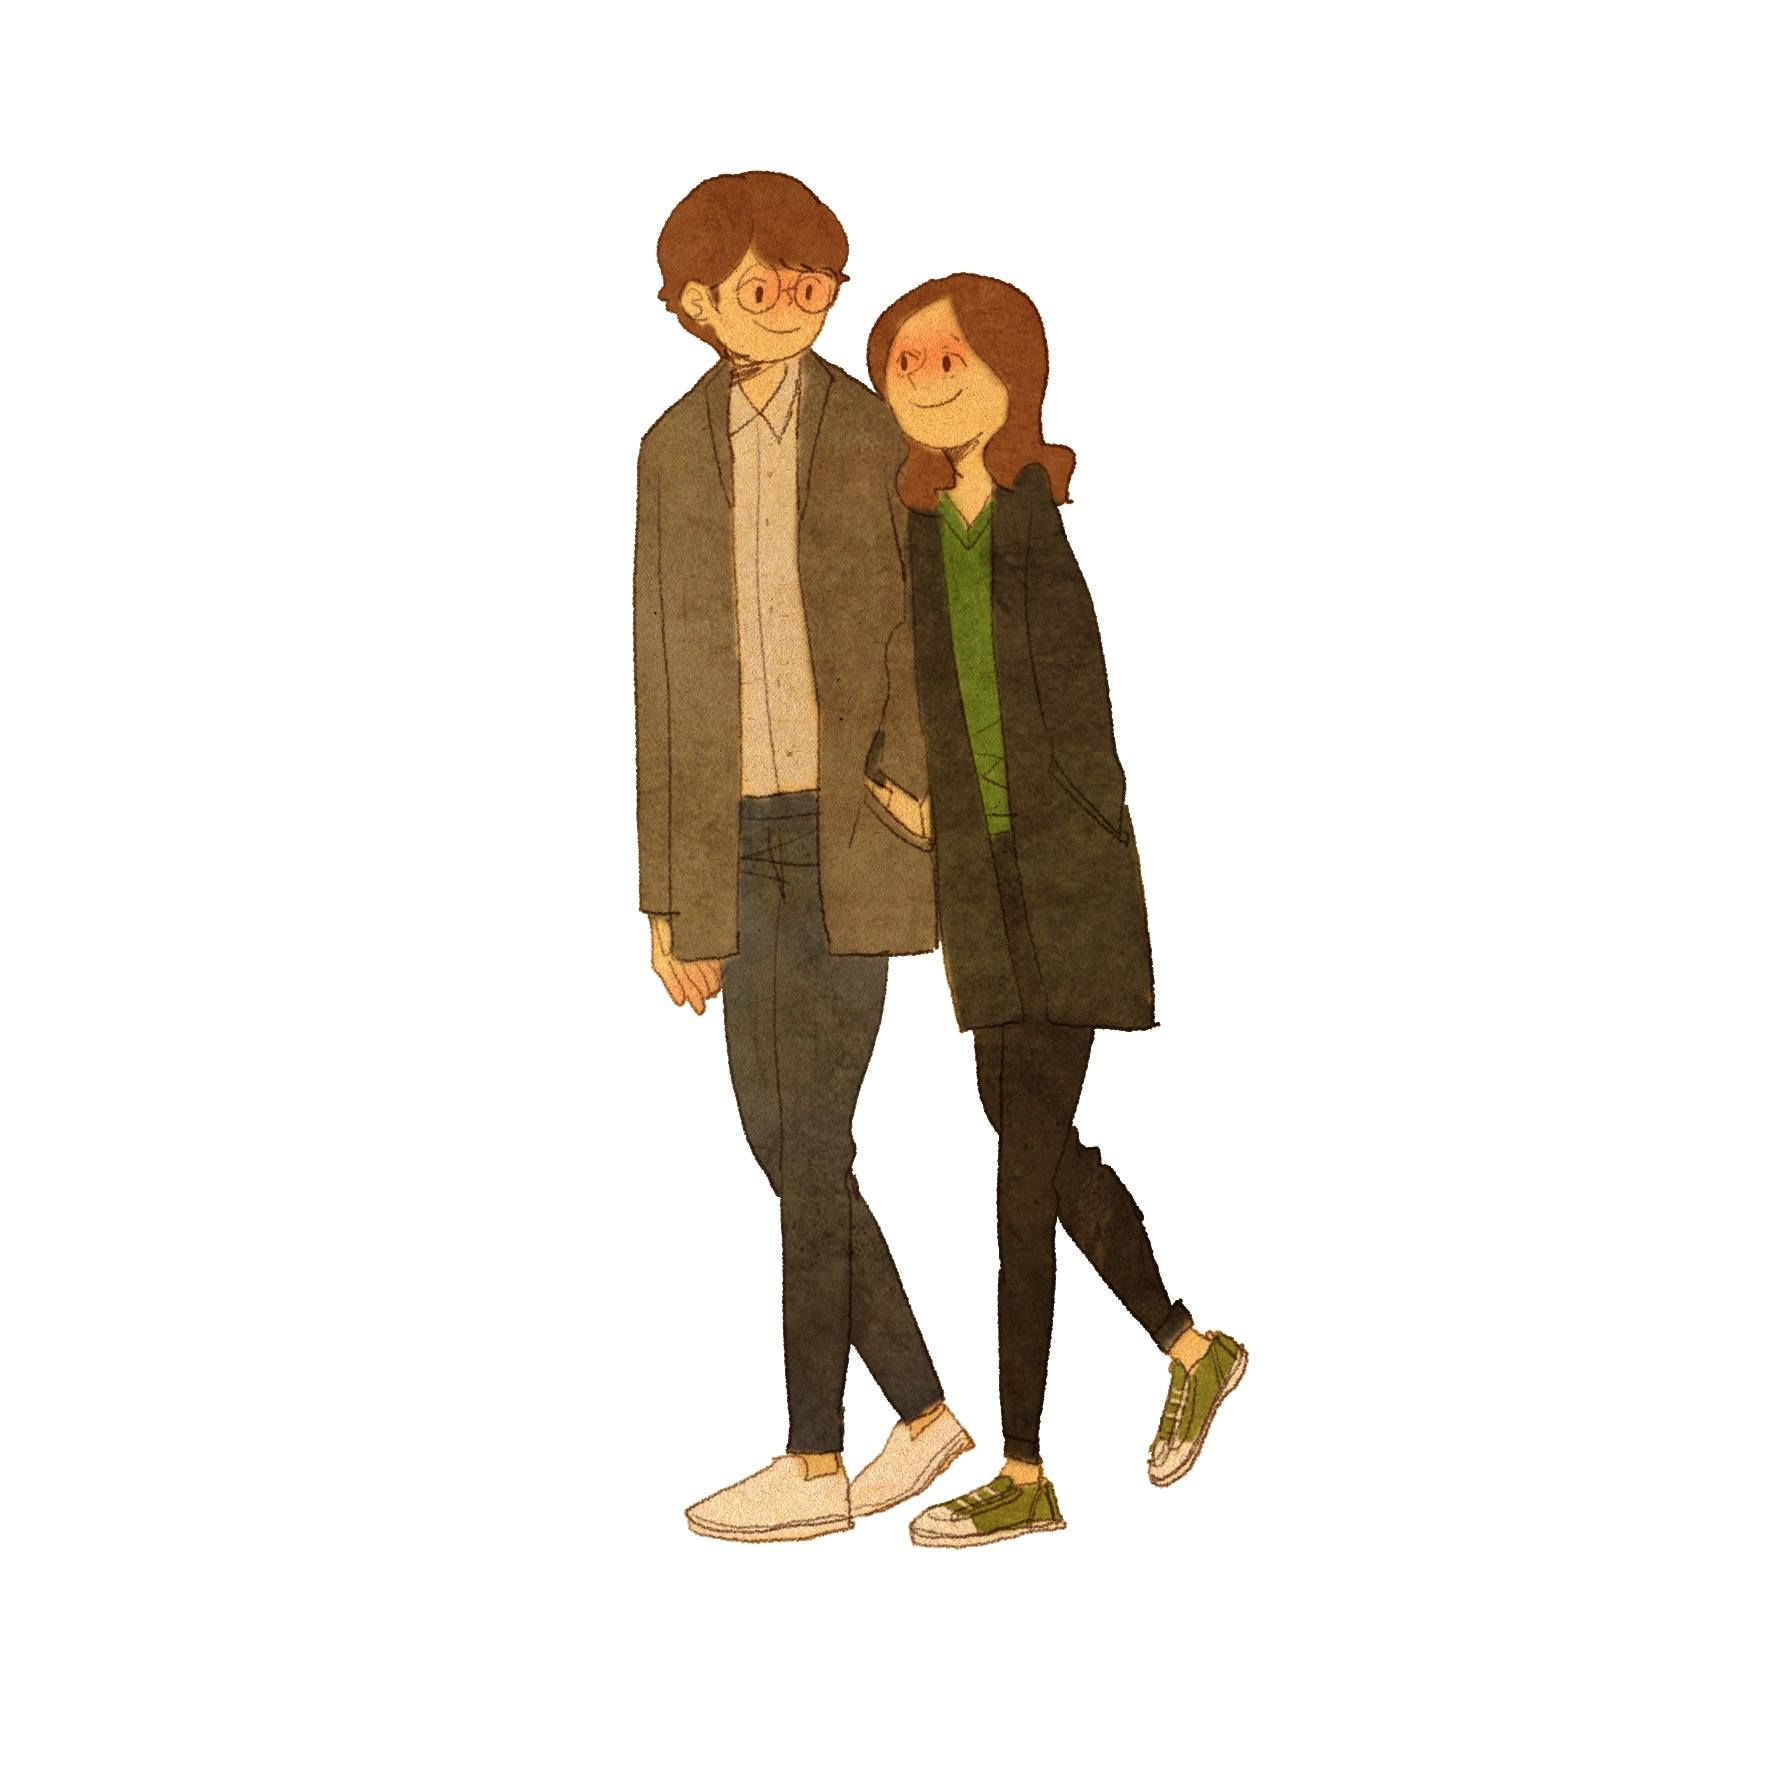 ♥ SHOULDER TO LEAN ON ~ You always support me, especially when I need a  shoulder to lean on. ♥ by Puuung… | Love cartoon couple, Love illustration,  Puuung love is